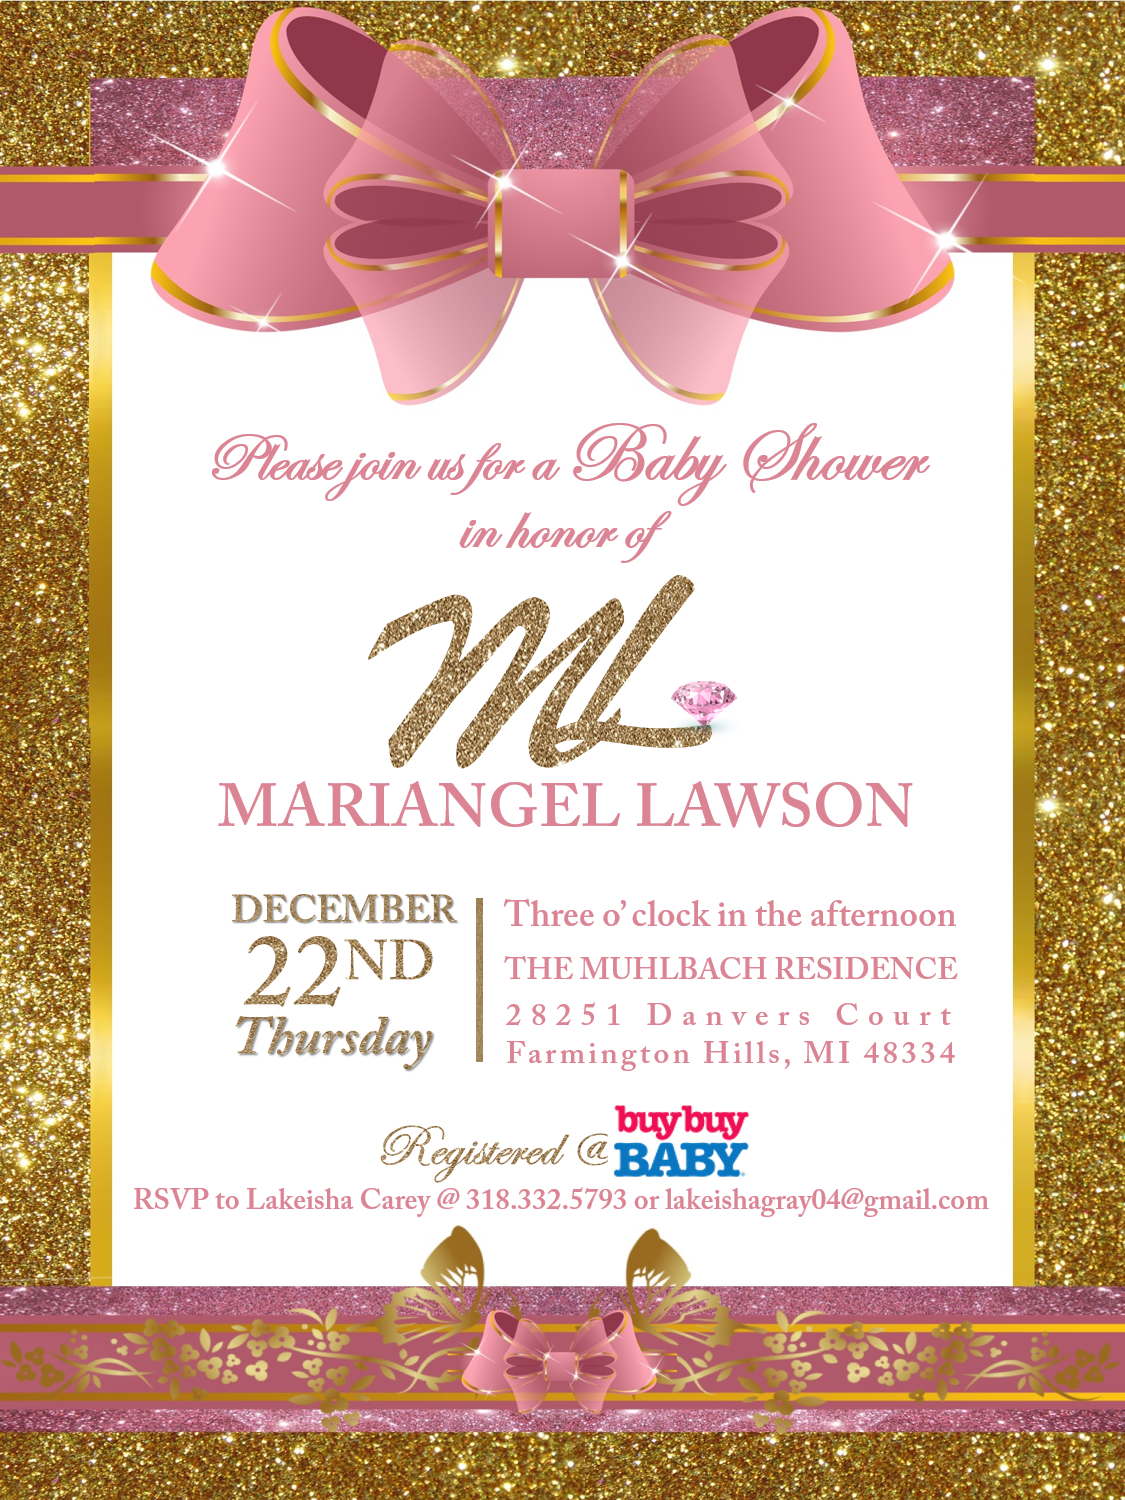 mariangel invitation.official revised2